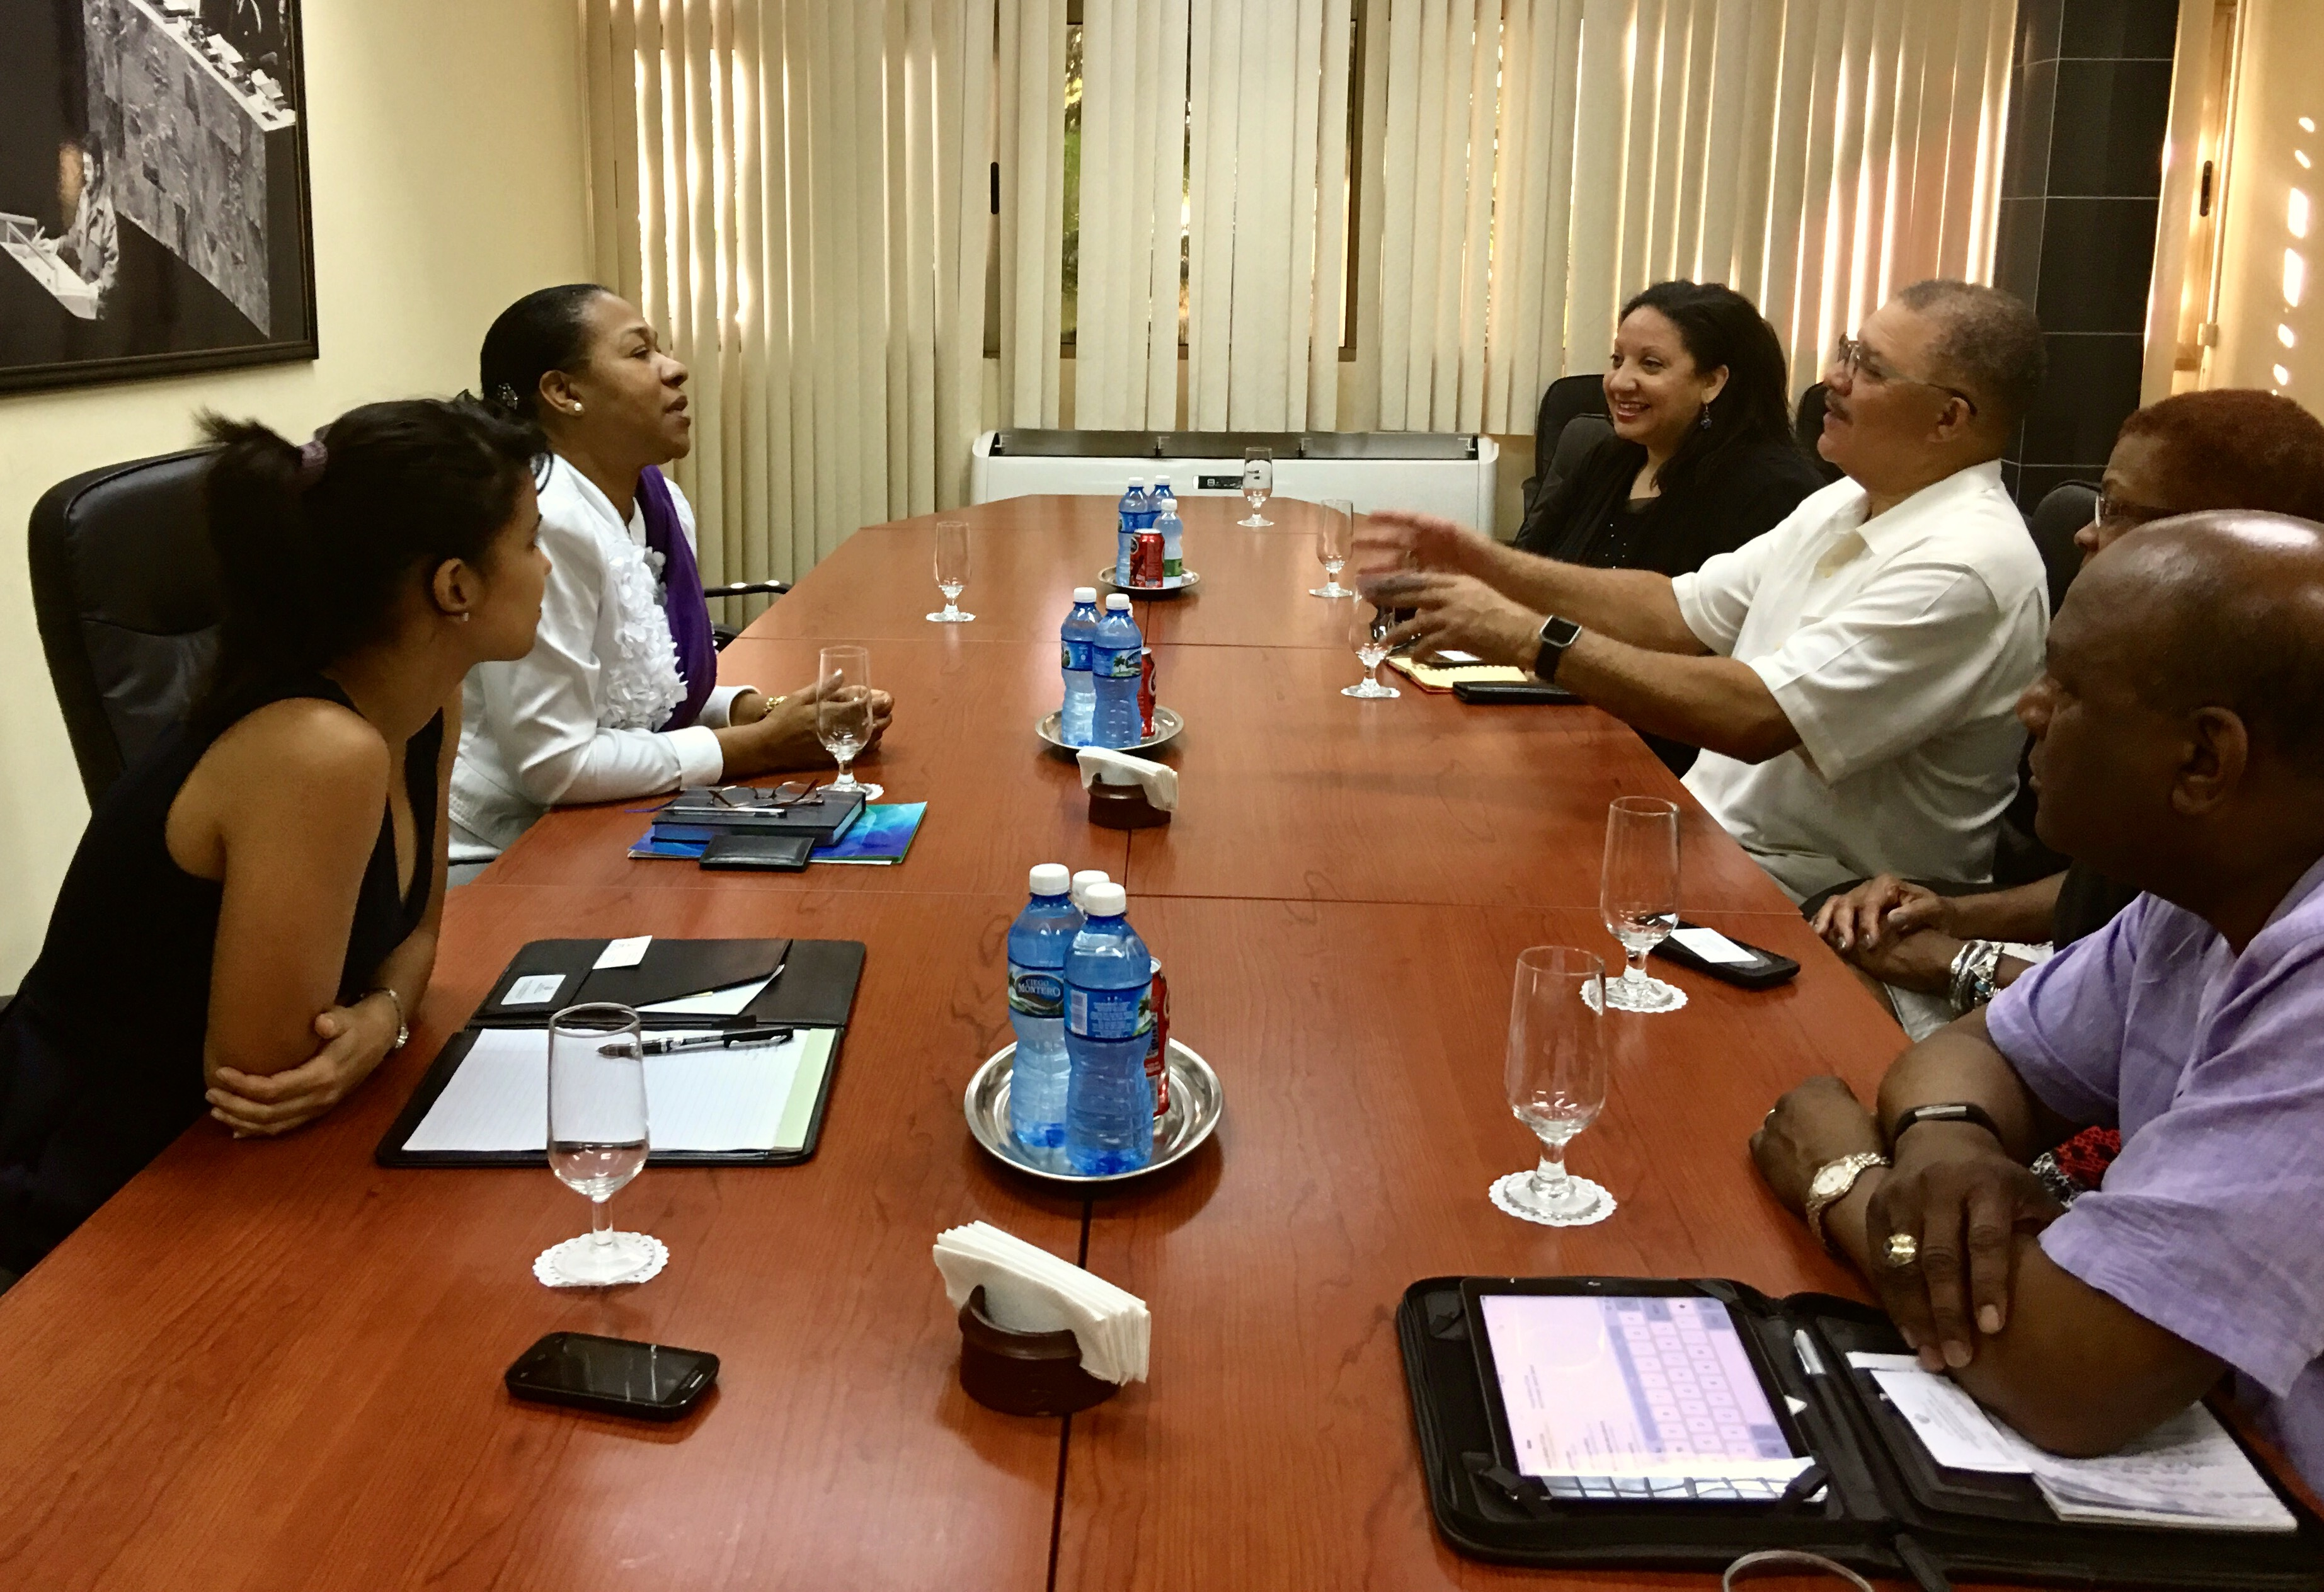 DeWayne Wickham, with arms outstretched, planned the trip of about 20 members of the National Association of Black Journalists, filmmaker/actor Tim Reid and representatives from Morgan State University to Cuba. Wickham is a past NABJ president and dean of the Morgan State University's School of Global Journalism and Communication.